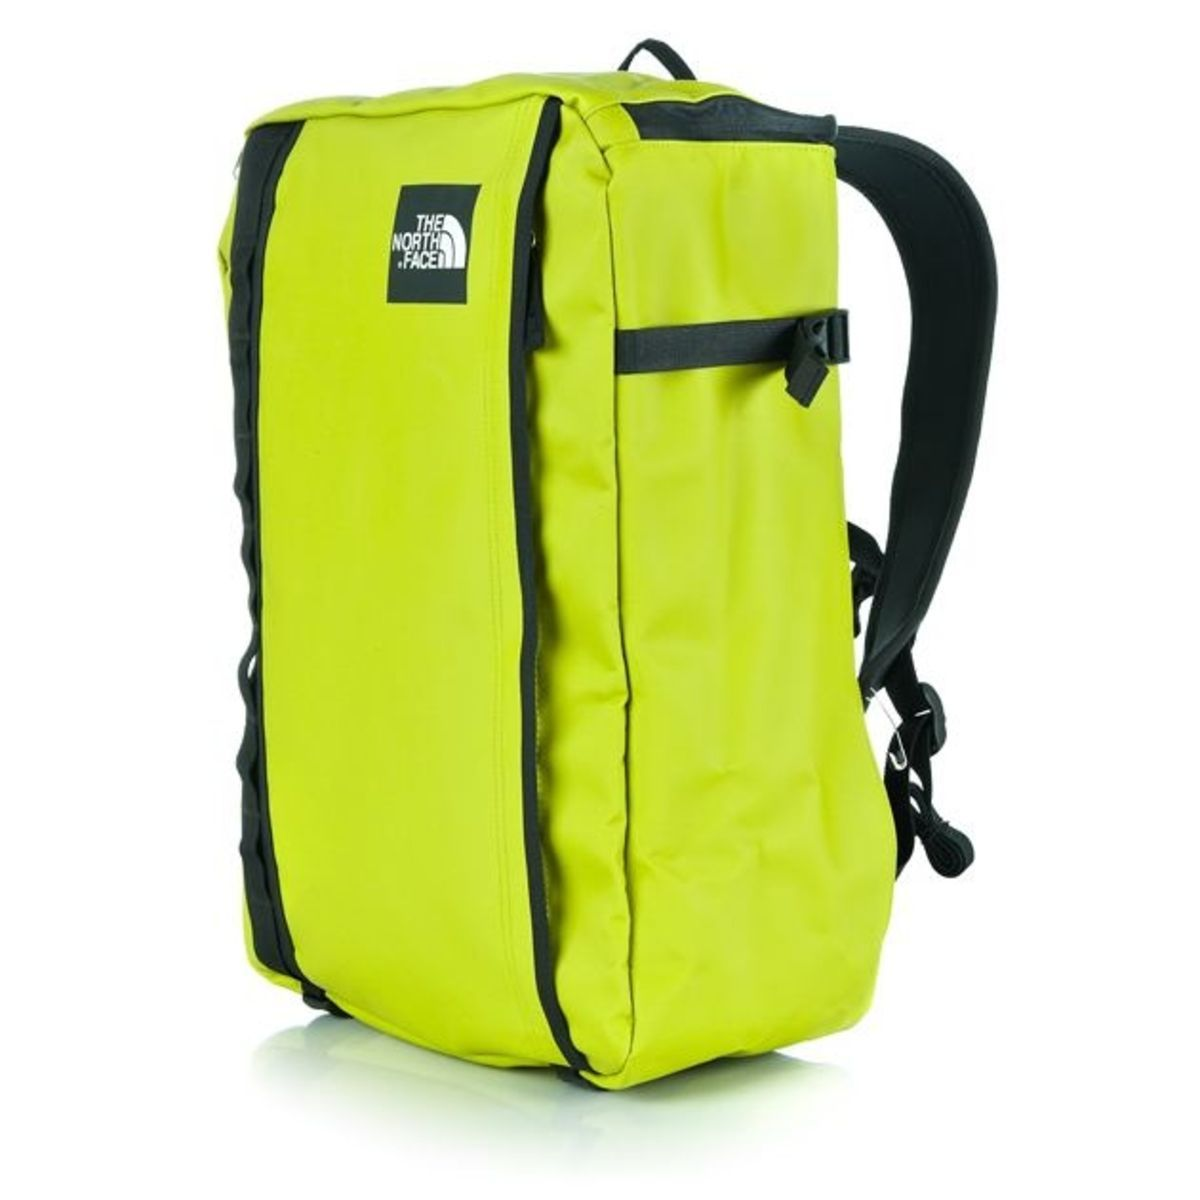 8b430b6977e0679e1d8298c3c0f9ae5b the north face bags the north face base camp fuse box duffle green fuse botanicals at gsmx.co